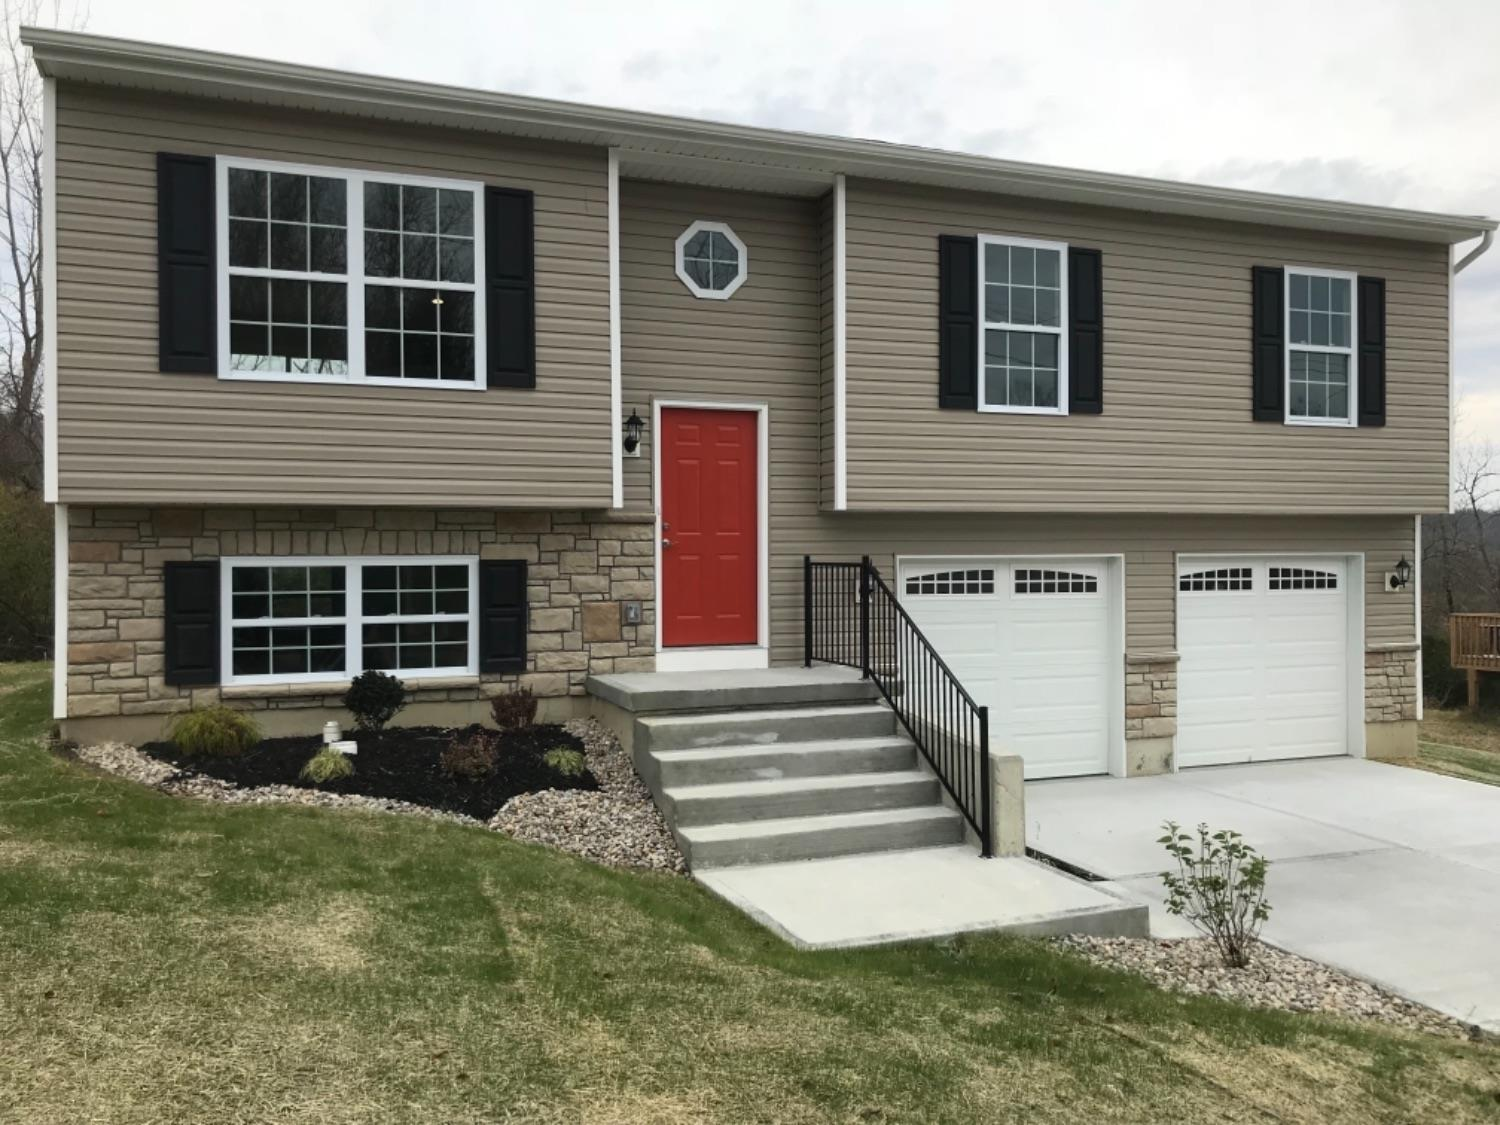 121 E Scott St Cleves, OH